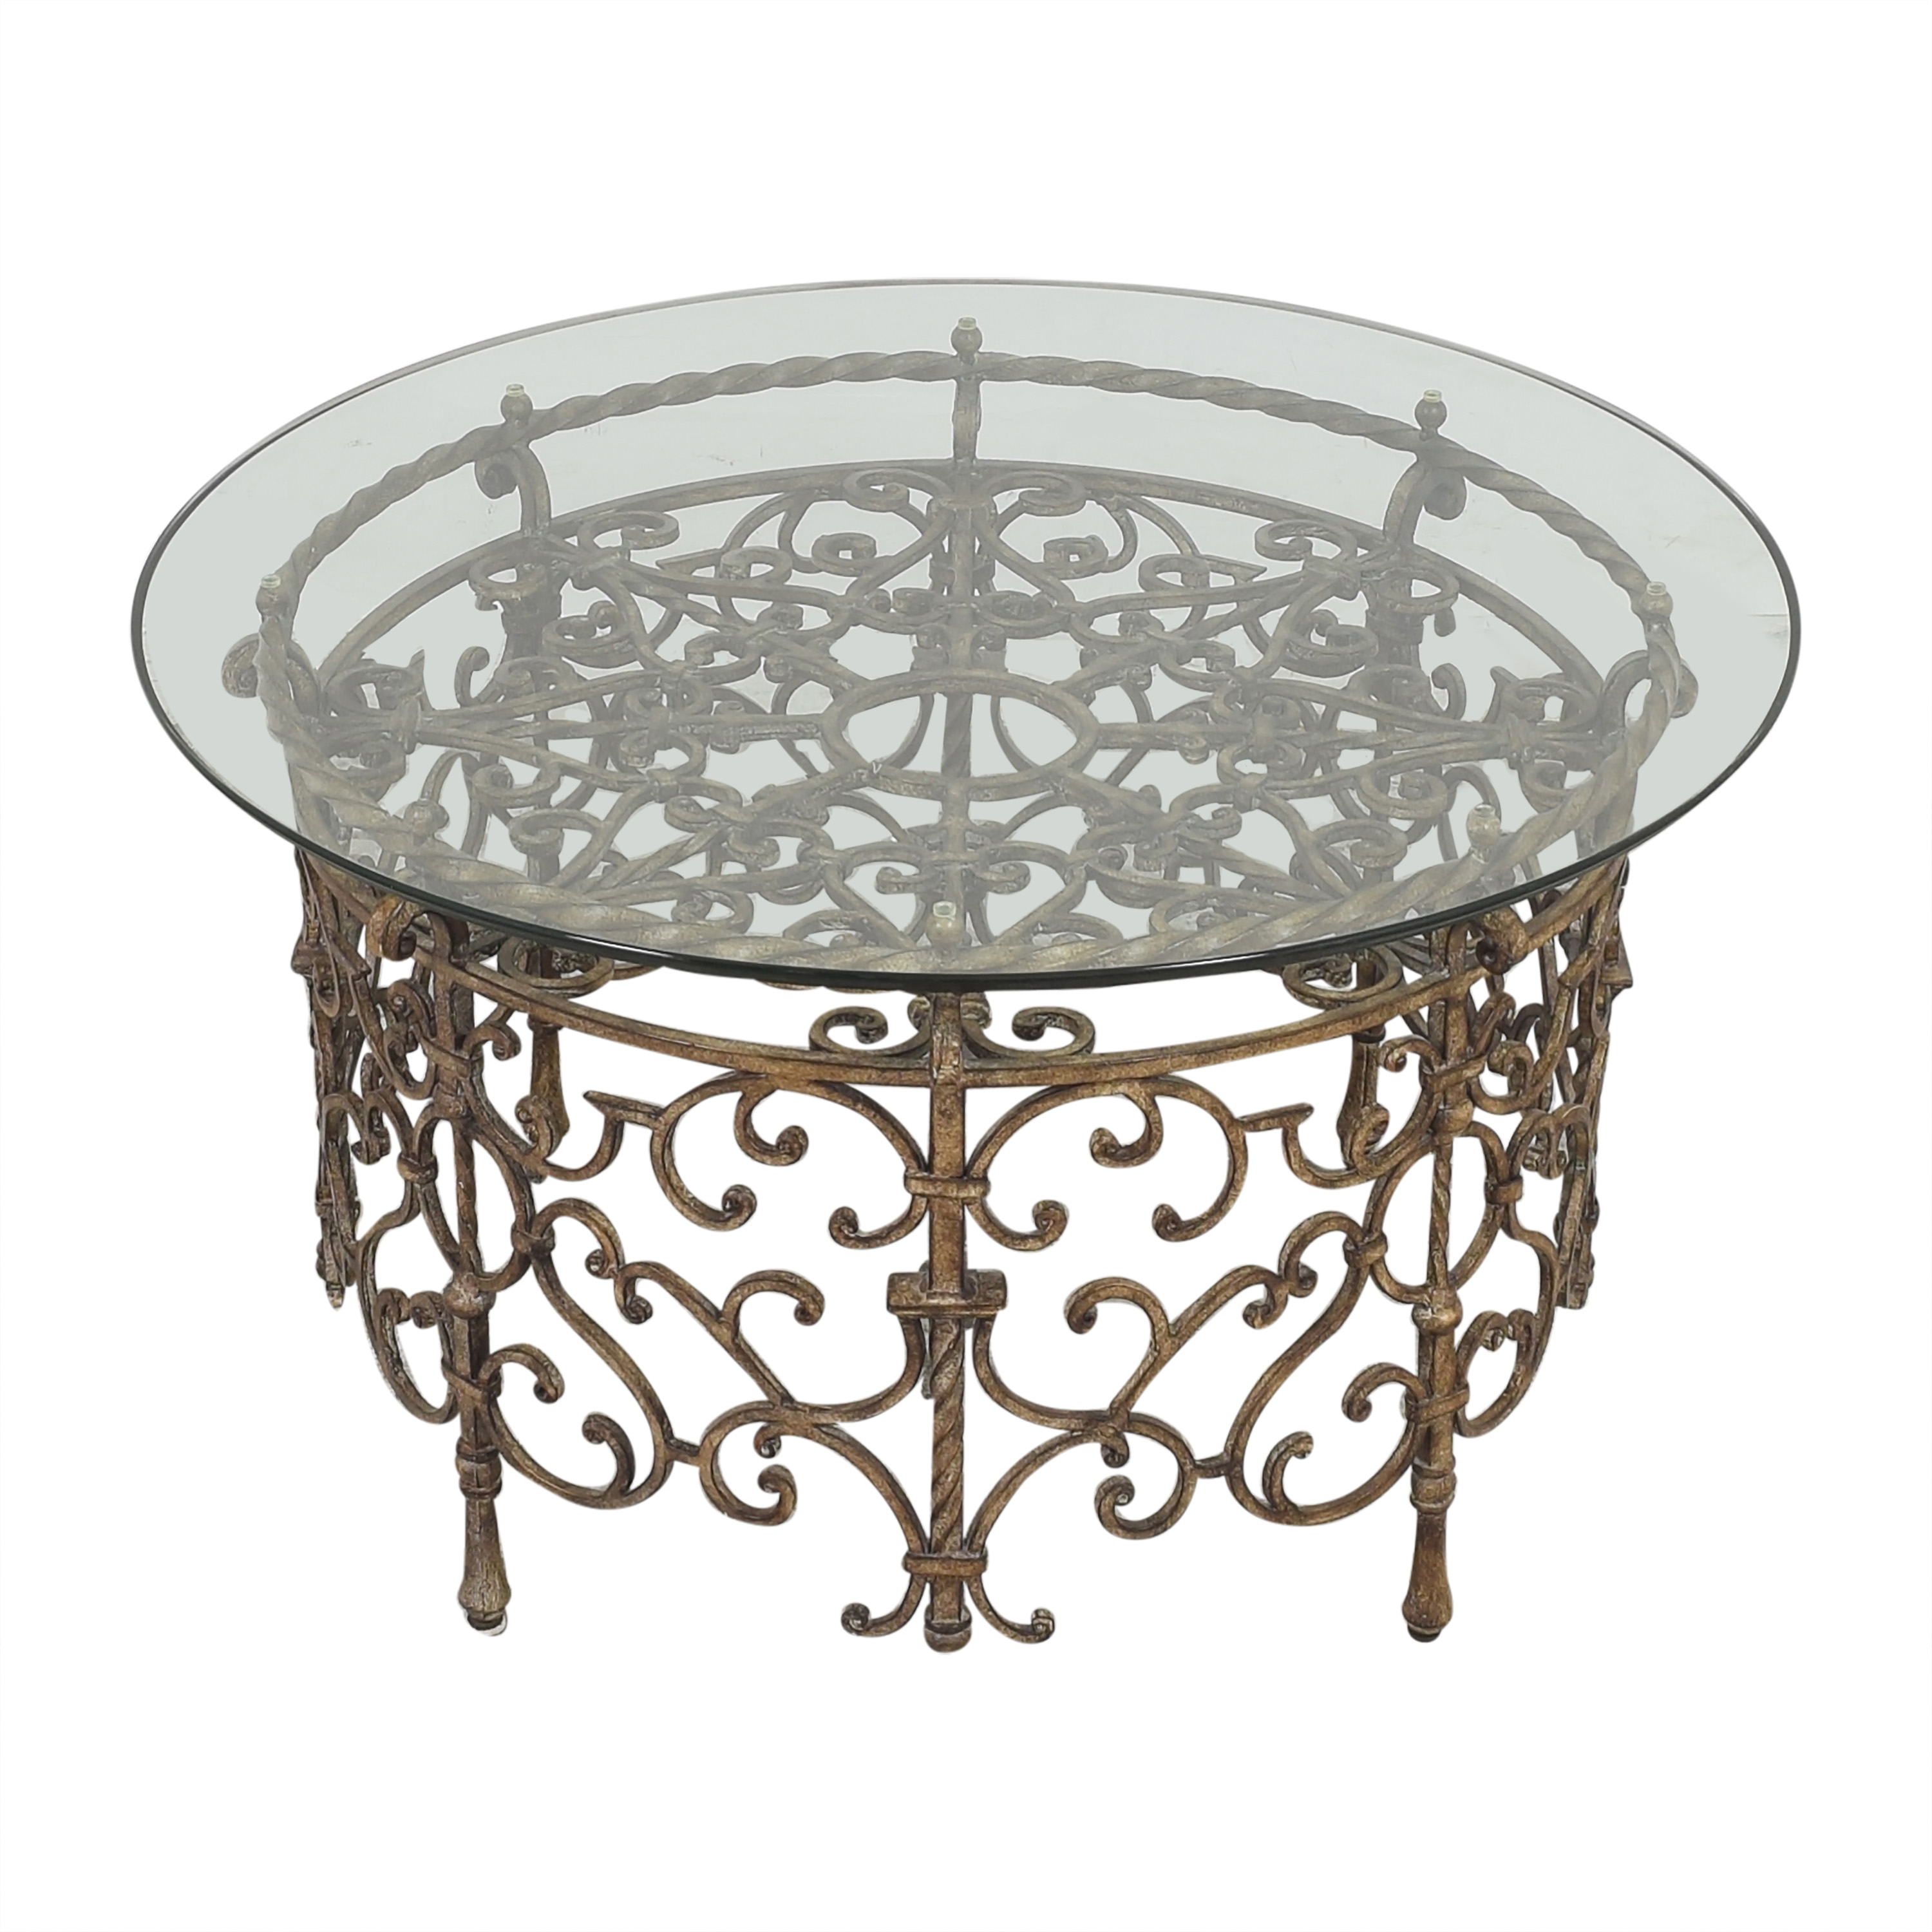 Horchow Horchow Round Transparent Coffee Table second hand